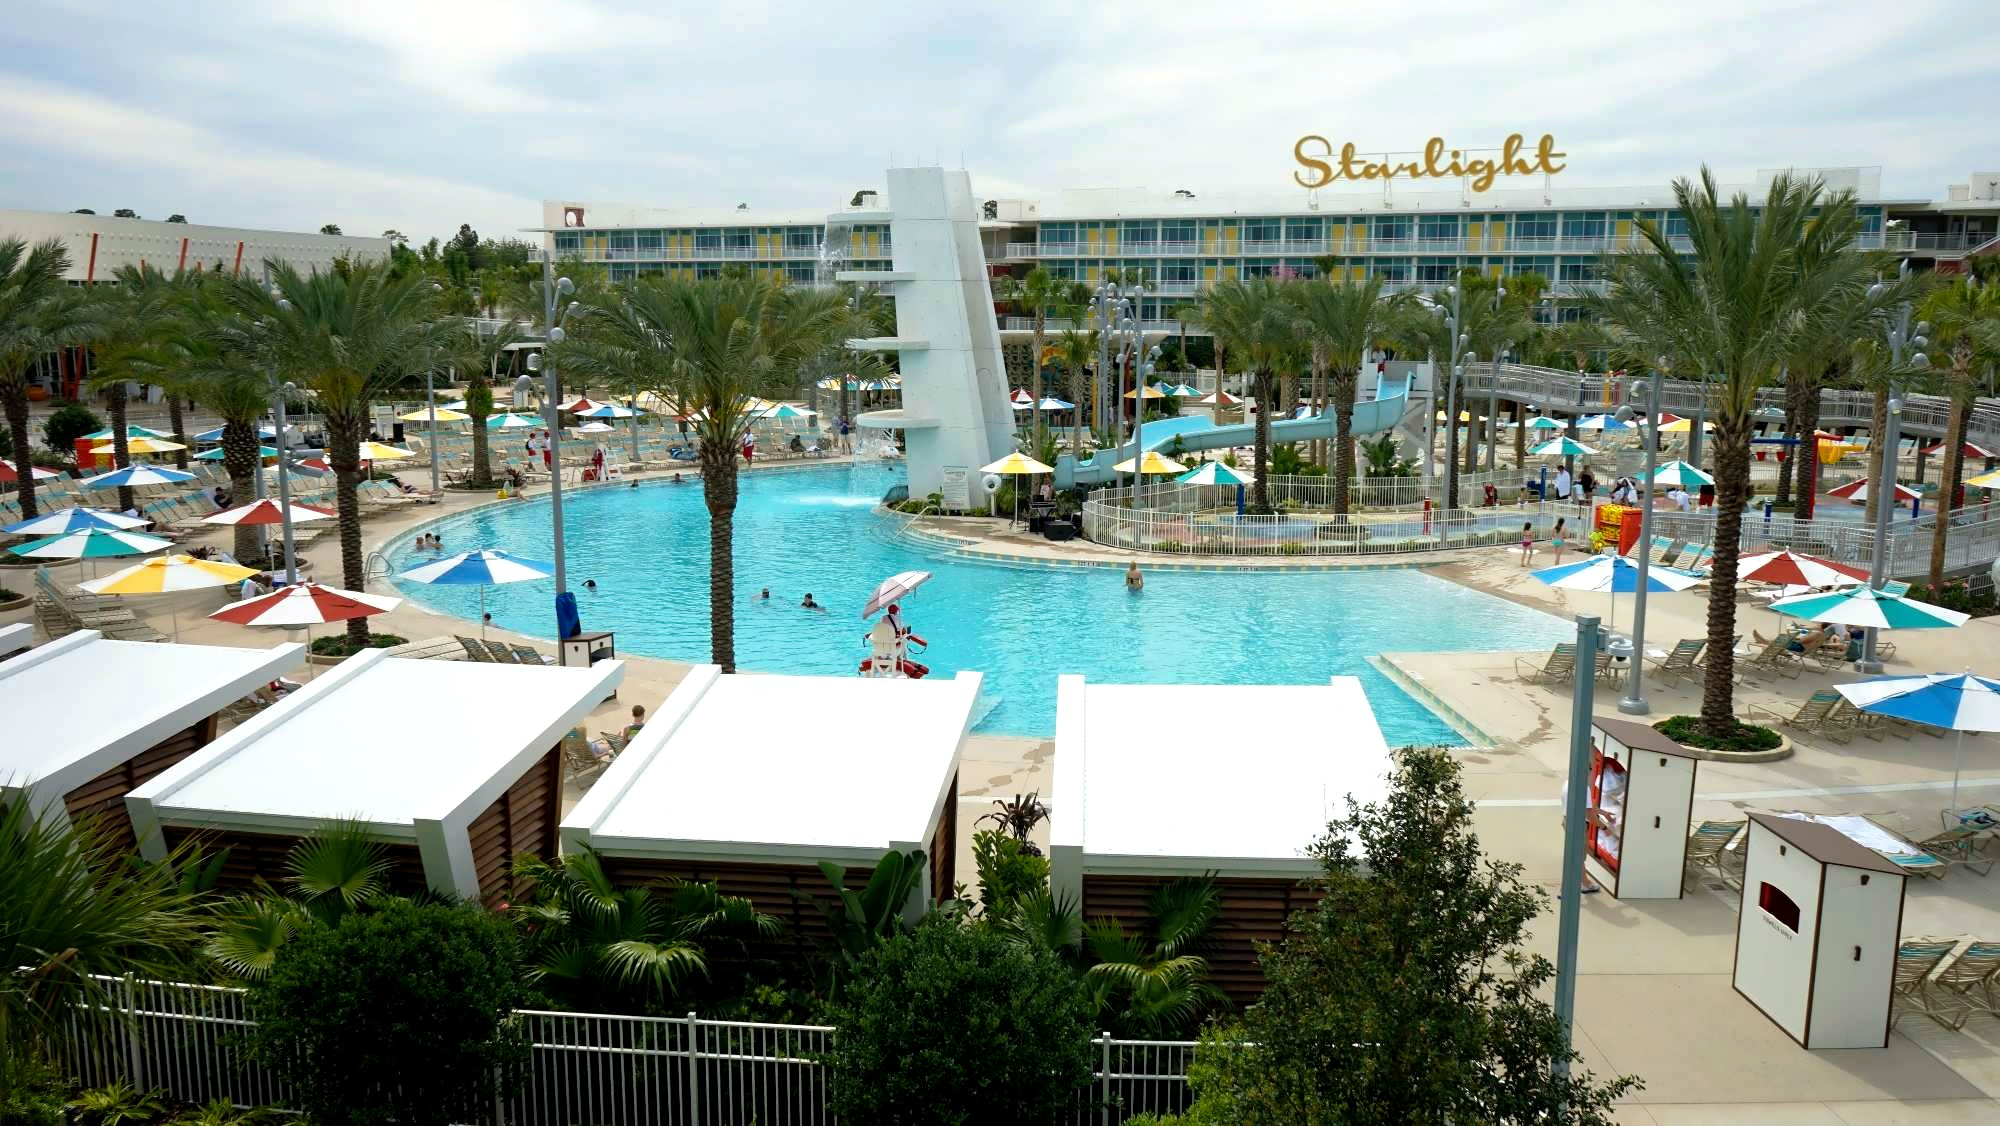 cabana bay beach resort - complete insider's guide